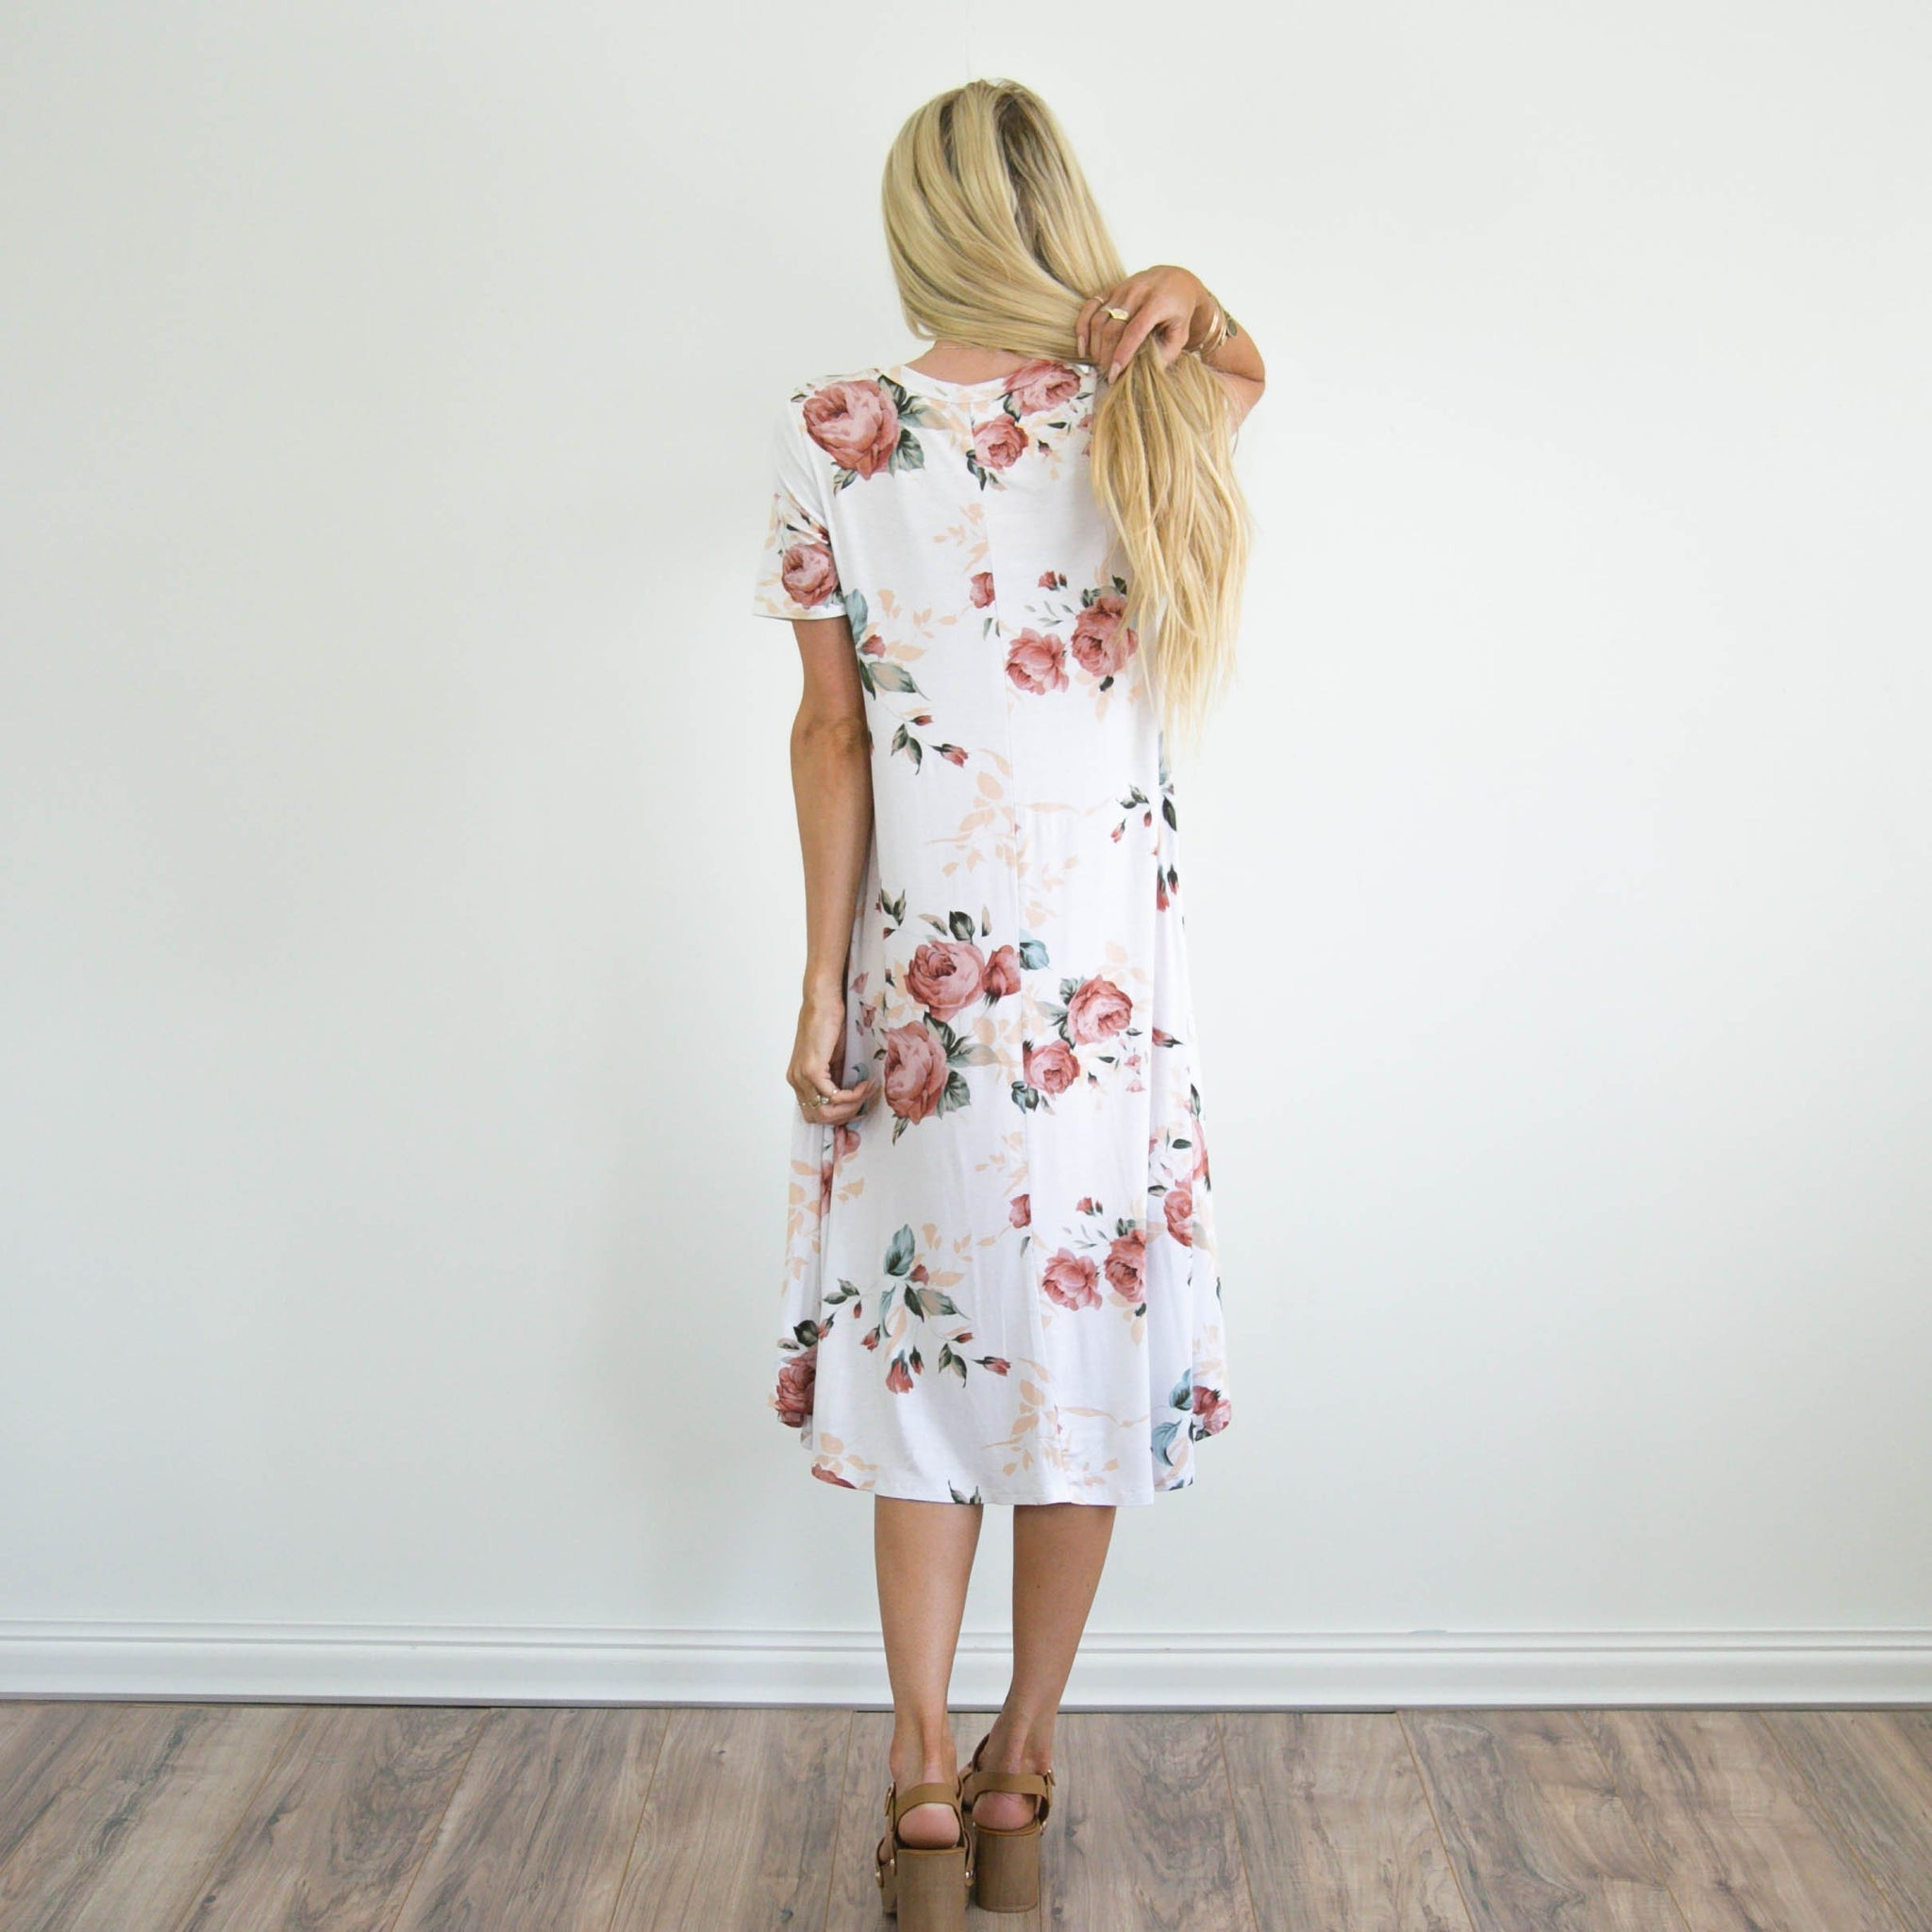 S & Co. Lillie Dress in Ivory